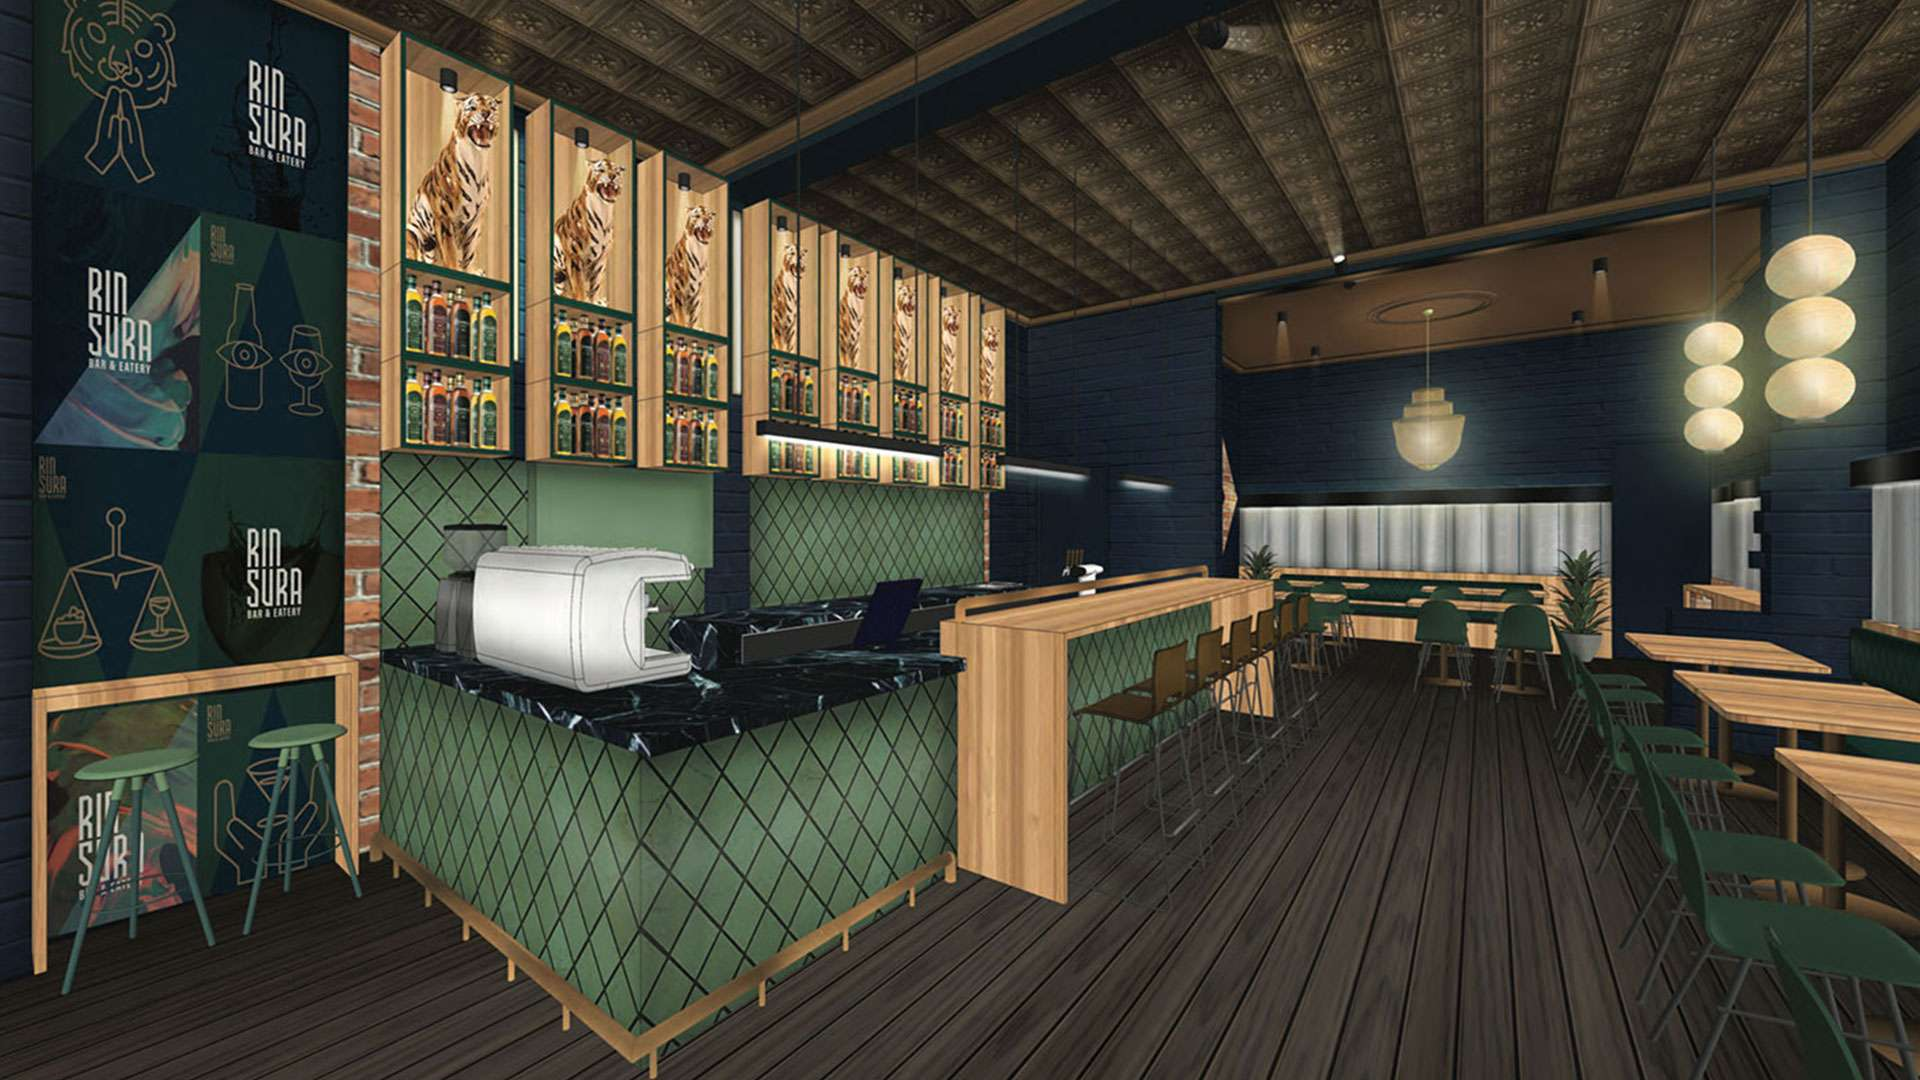 Work In Progress: Rin Sura Modern Thai Restaurant and Bar